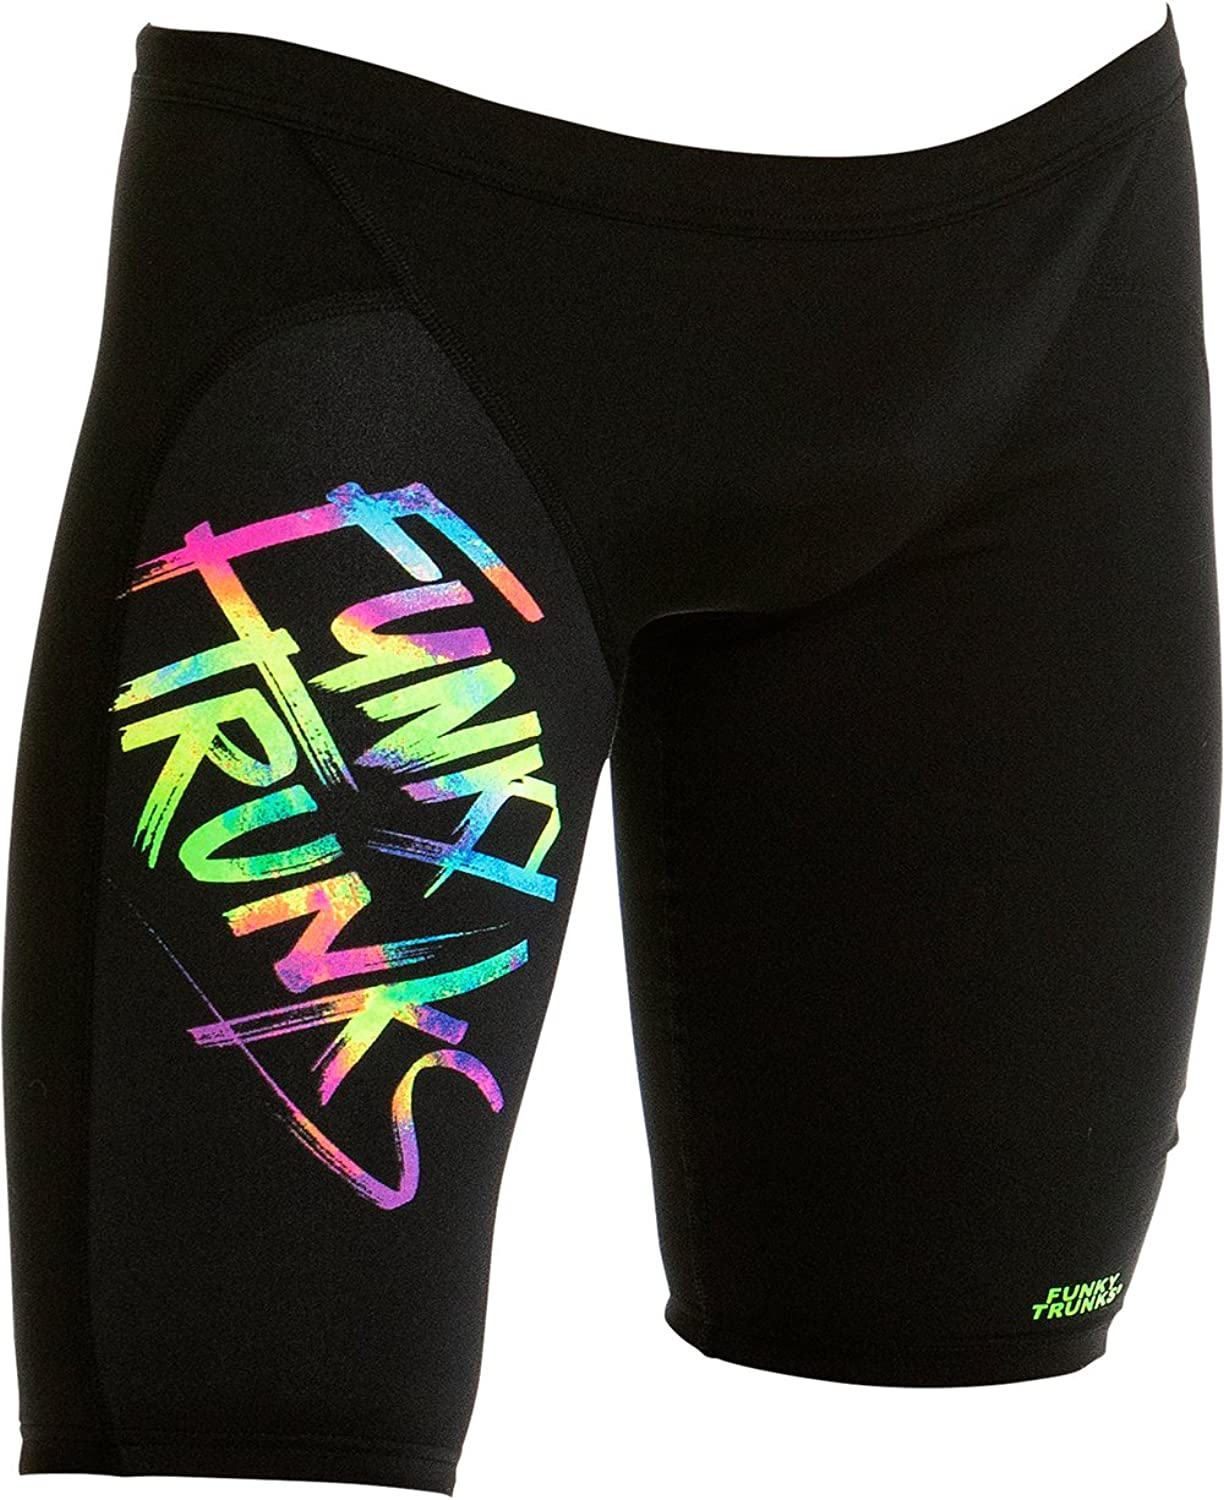 Funky Trunks Male Training Jammer - Trunk Tag